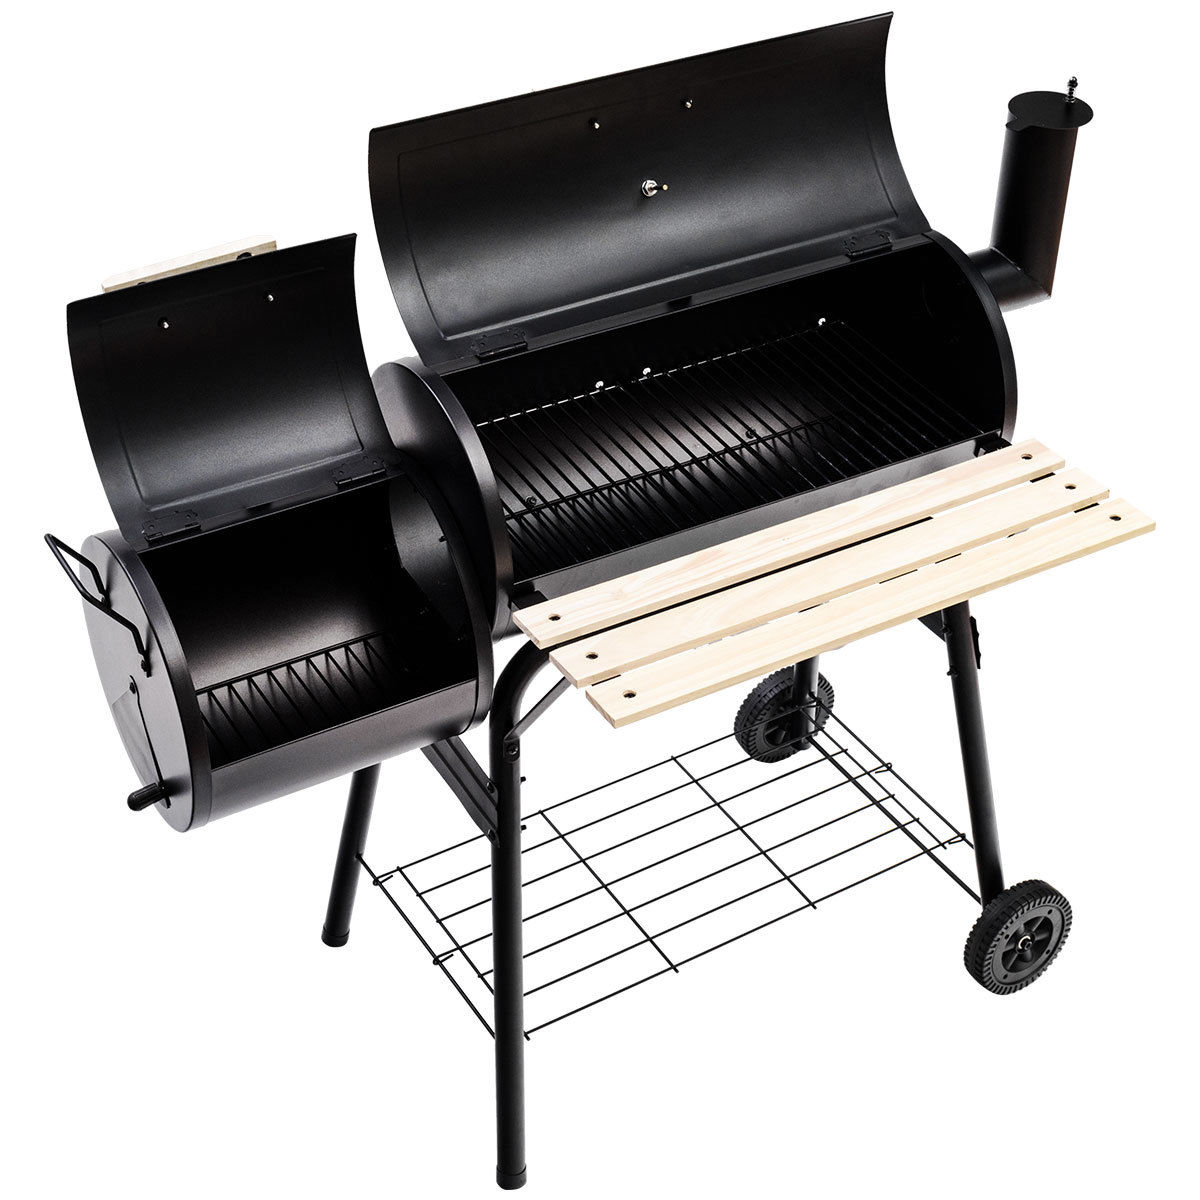 Outdoor Grill Costway Outdoor Bbq Grill Charcoal Barbecue Pit Patio Backyard Meat Cooker Smoker